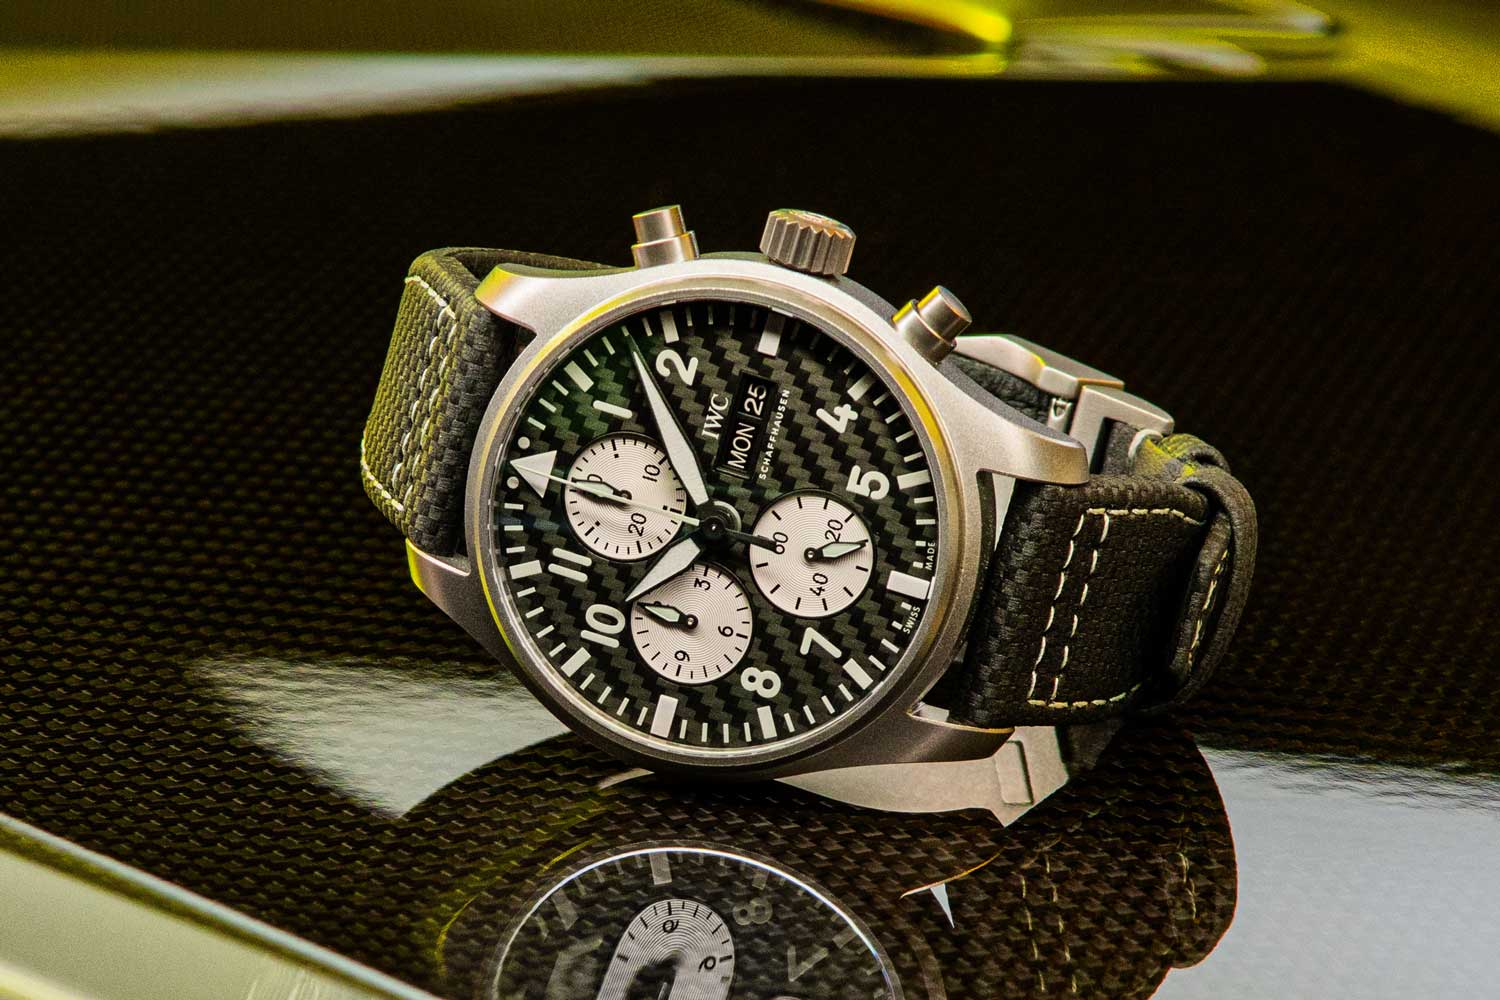 This is IWC's first 43mm Pilot's chronograph watch with a case in grade 5 titanium finish